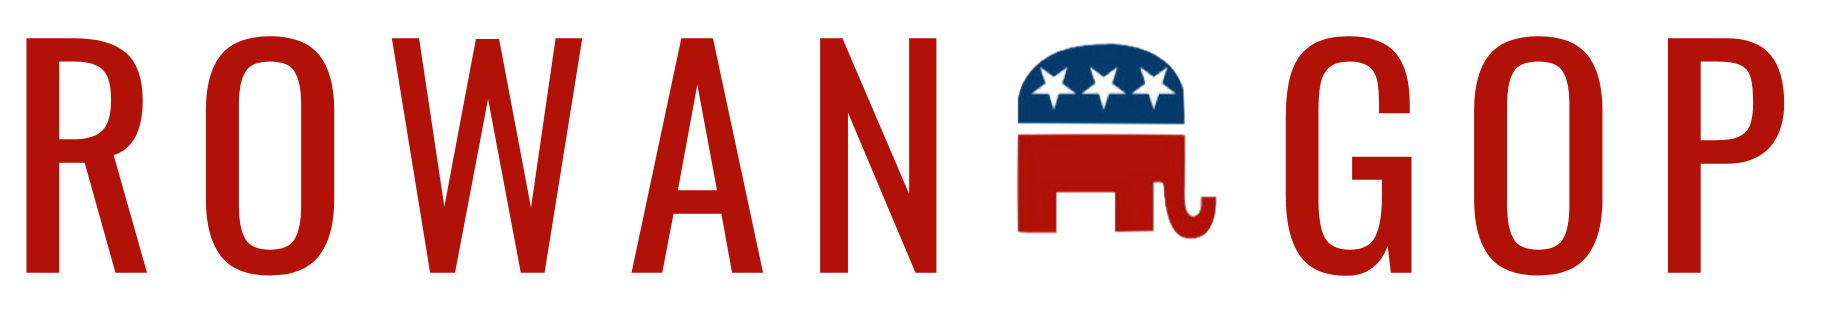 Rowan County Republican Party